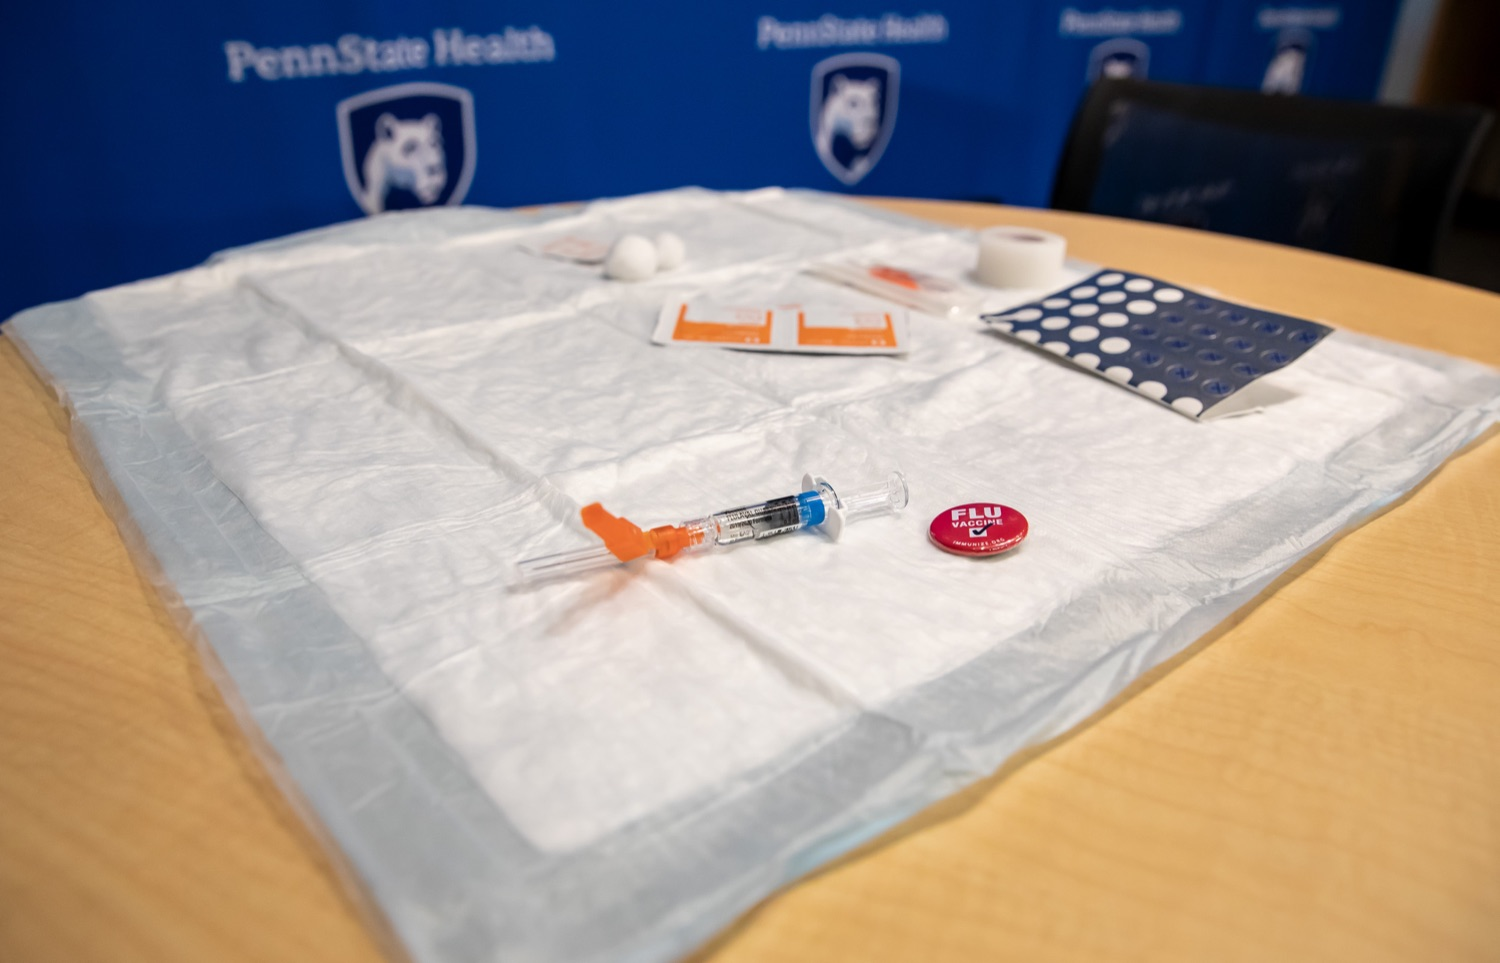 "<a href=""https://filesource.wostreaming.net/commonwealthofpa/photo/17471_DOH_FluSeason_AG_05.jpg"" target=""_blank"">⇣ Download Photo<br></a>Harrisburg, PA.  At an event at the Penn State Health Milton S. Hershey Medical Center today, the Department of Health reminded residents that it is time to get their flu vaccine, as flu season officially starts this month and runs until May. Secretary of Health Dr. Rachel Levine encouraged residents to get their flu vaccine before the end of October and offered important tips to stay healthy during flu season.  October 8, 2019."